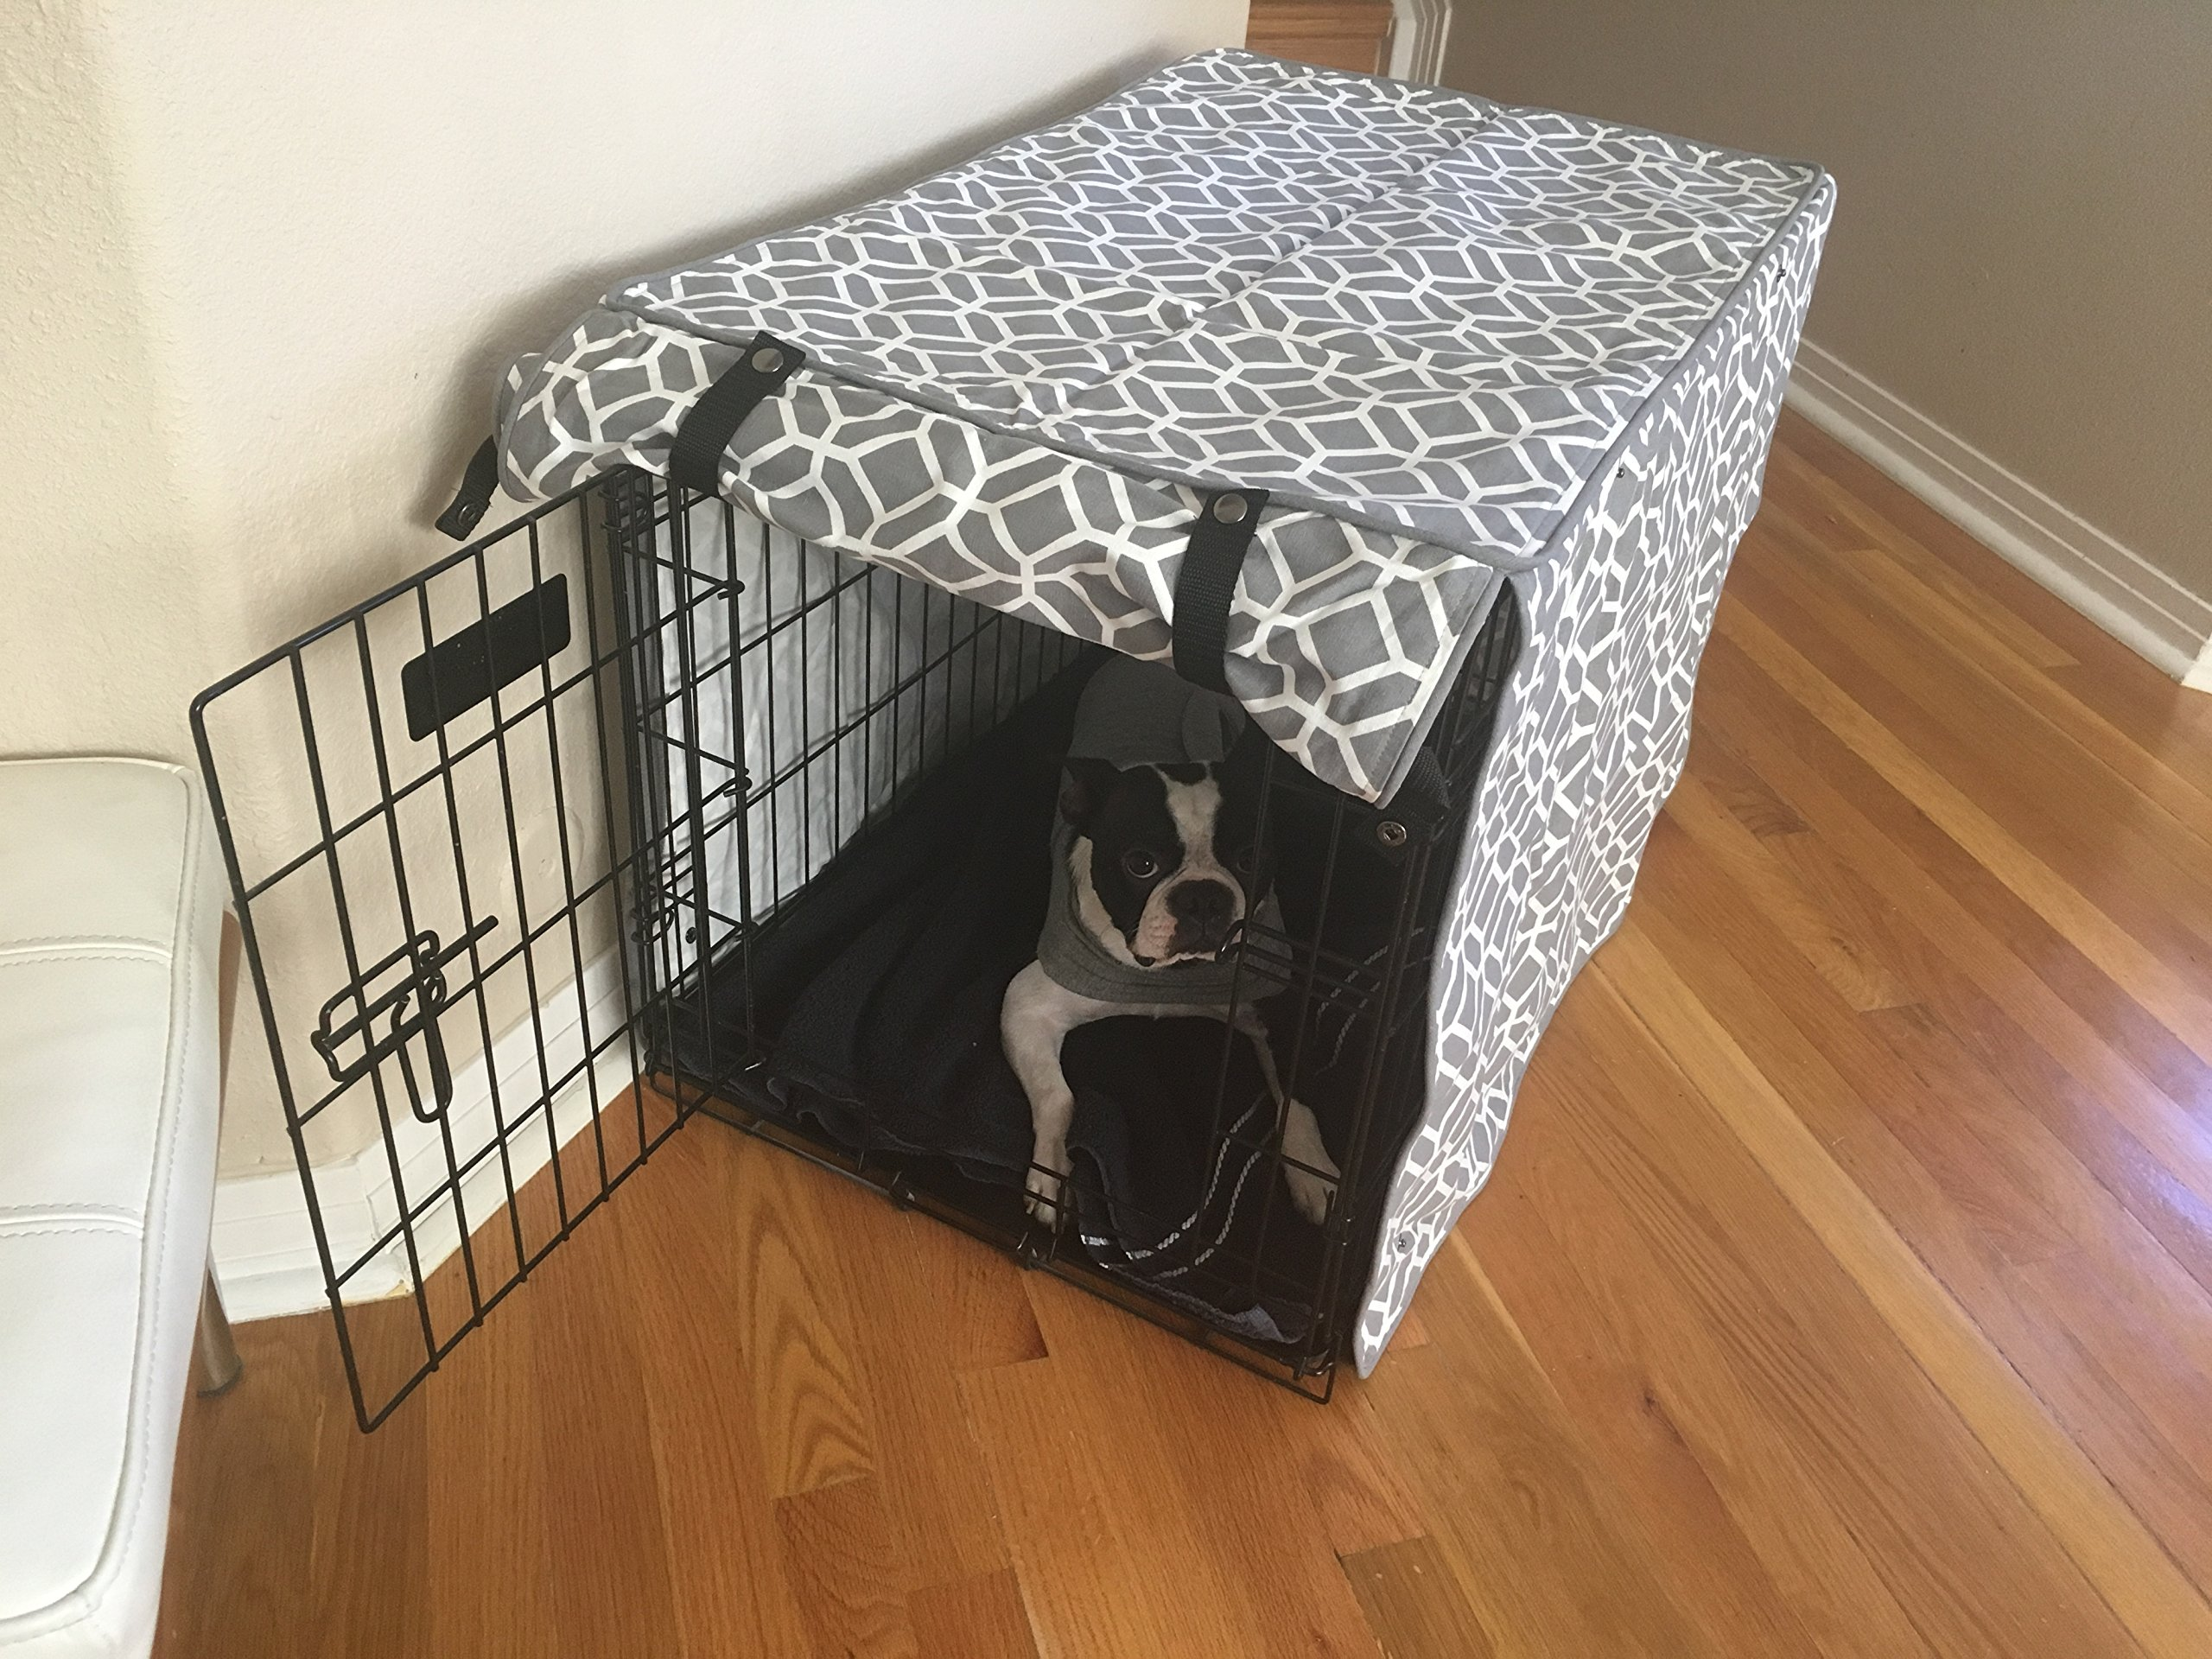 528 Zone Gray & White Stained Glass Print Grey Dog Pet Wire Kennel Crate Cage House Cover (Small, Medium, Large, XL, XXL) (XL 42x28x31)